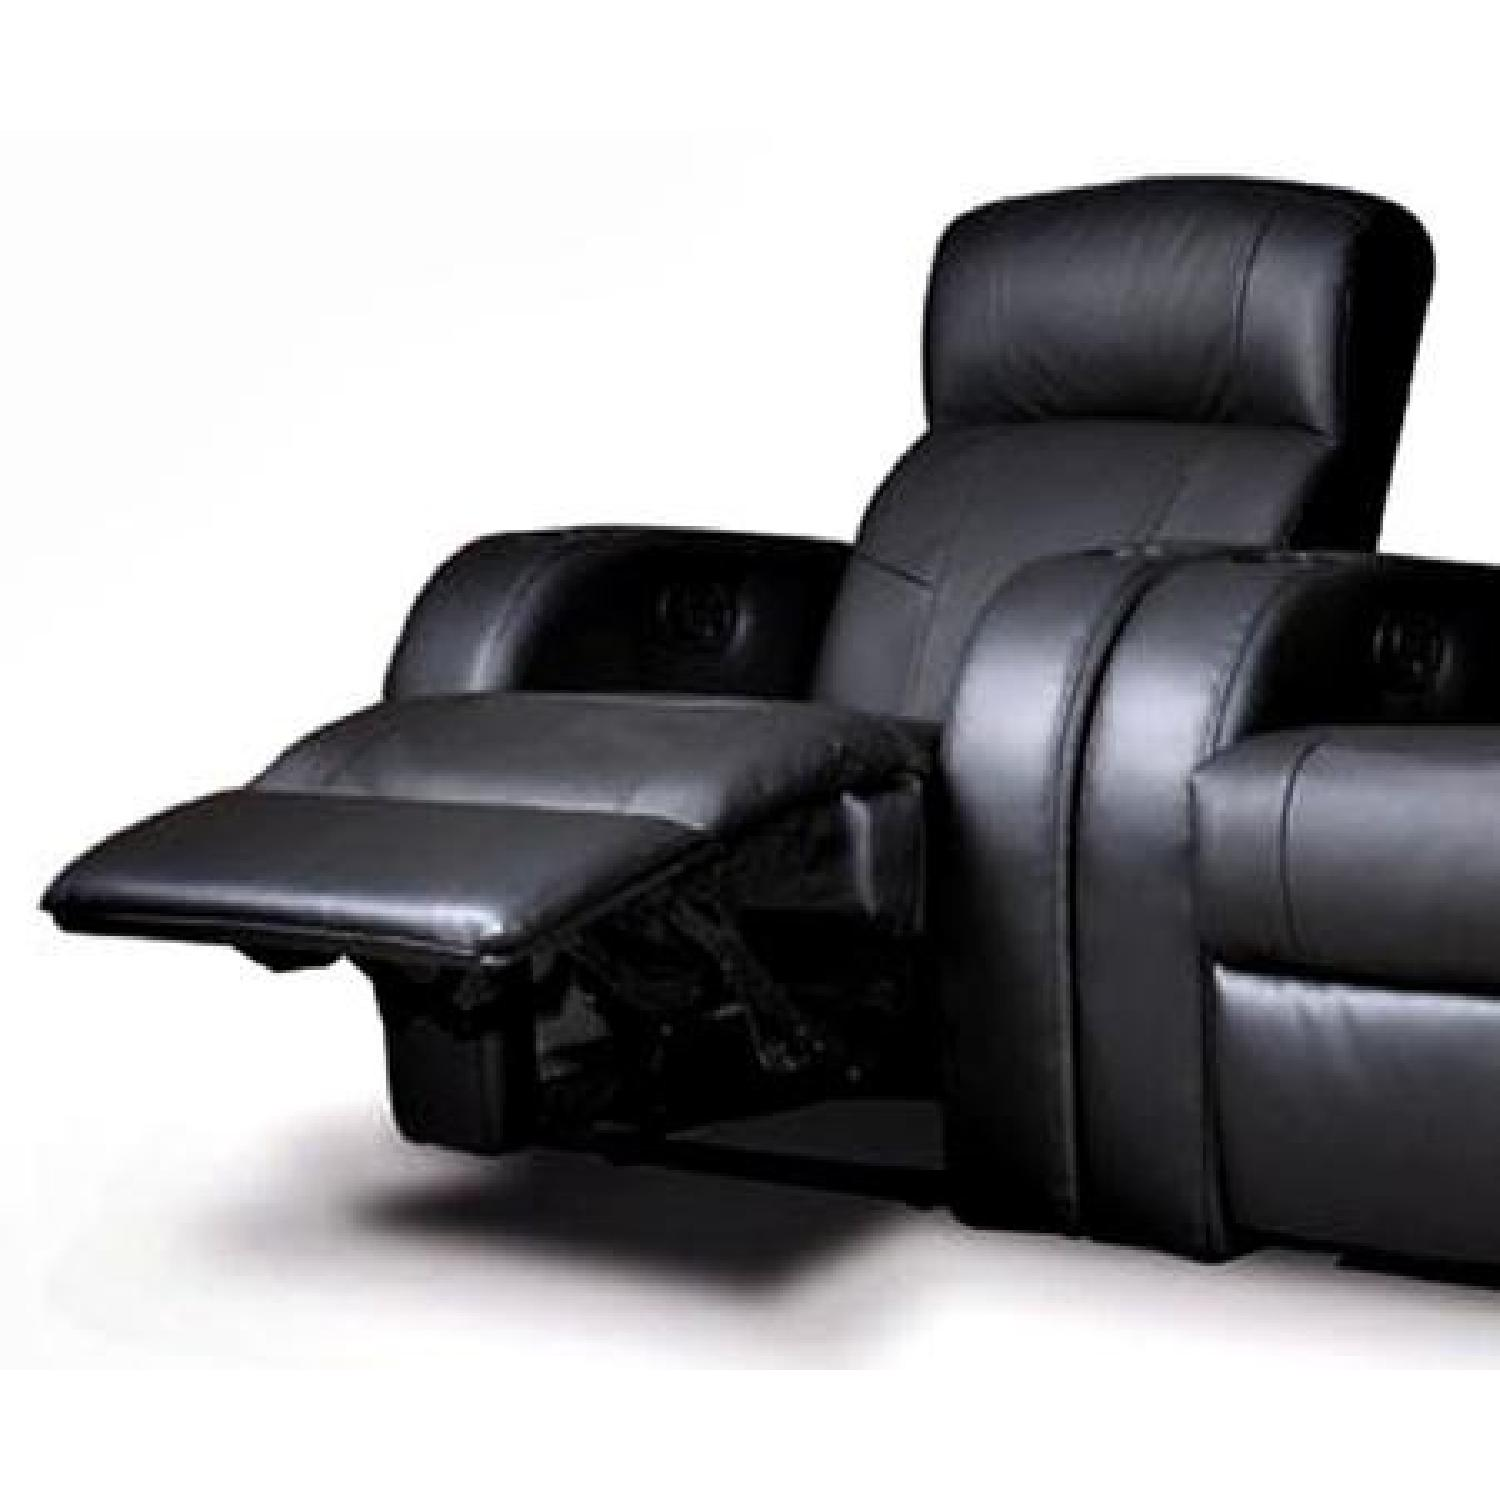 Recliner Chair in Black Leather Match w/ Cup-Holders - AptDeco